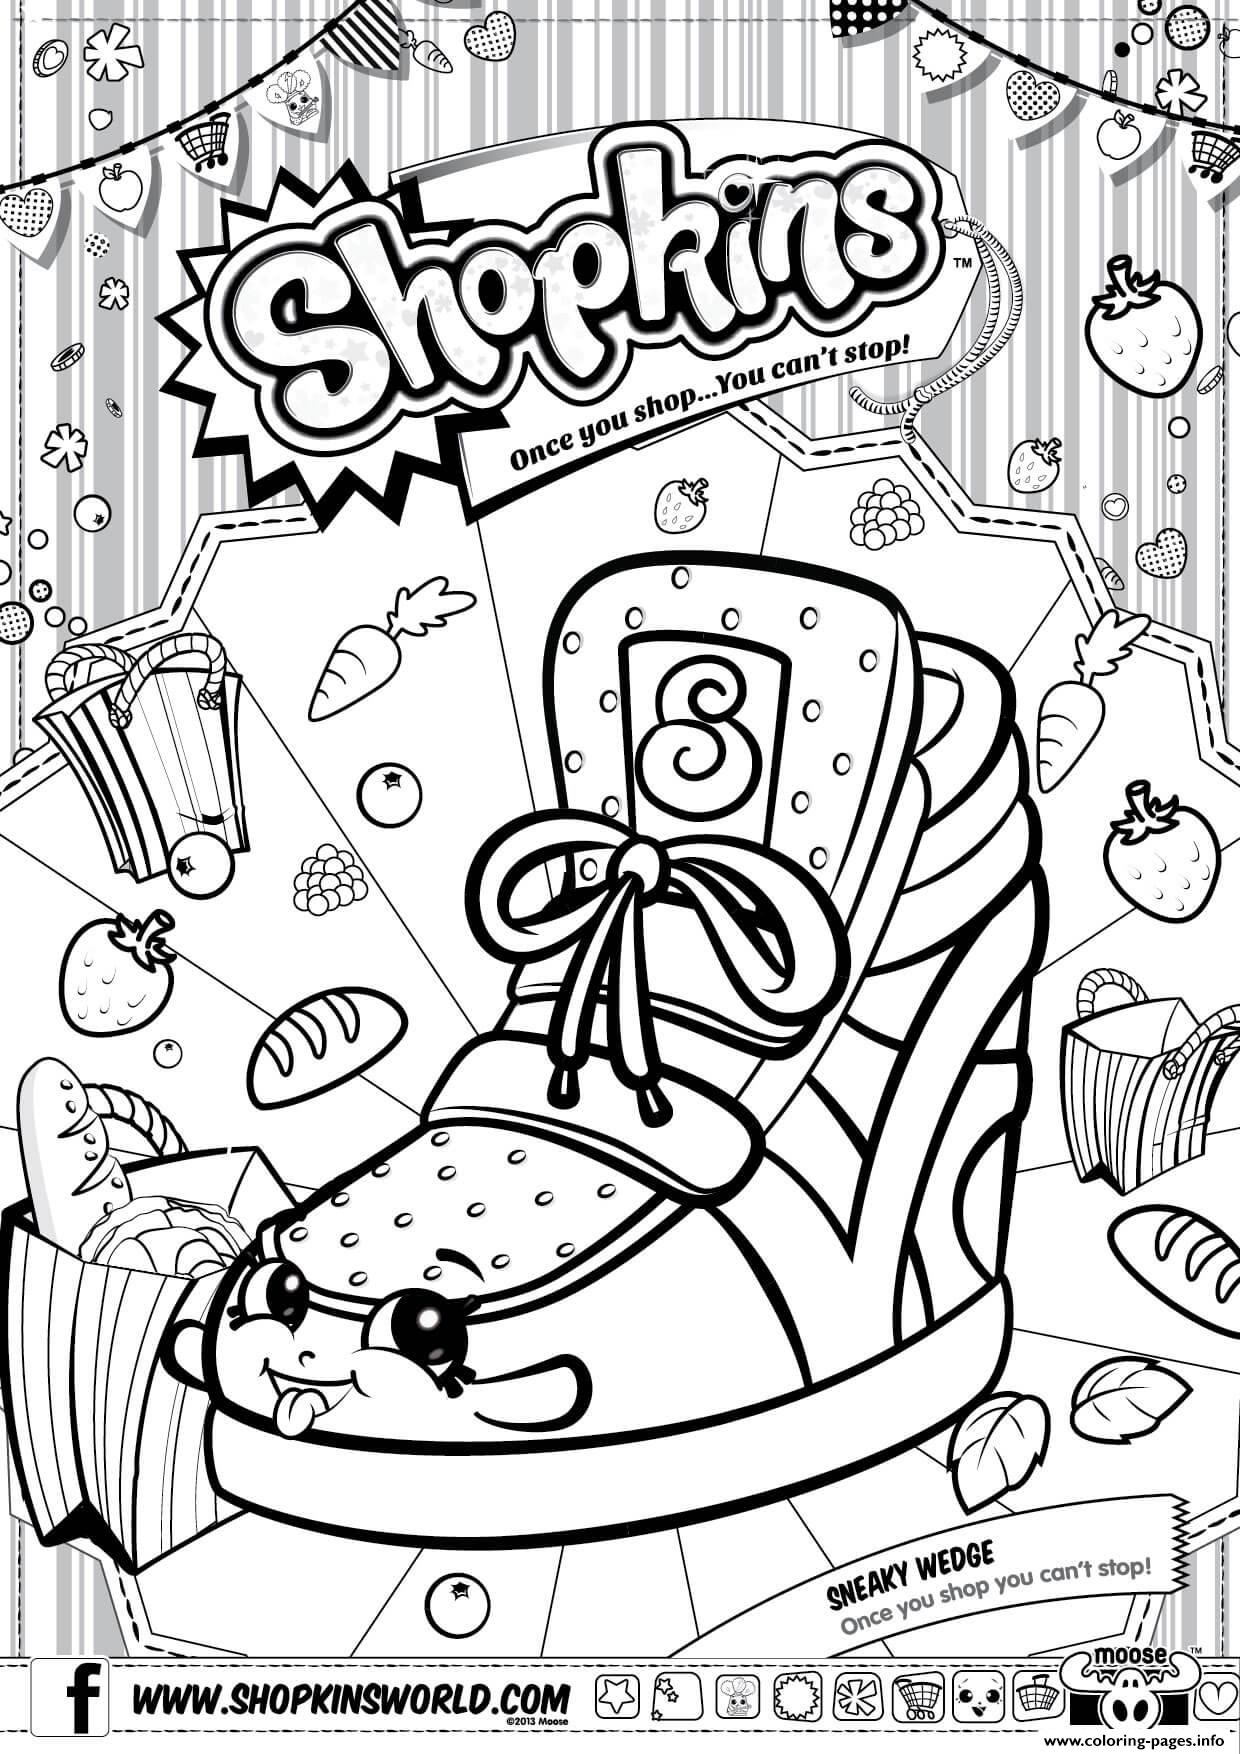 Shopkins color sheets - Shopkins Happy Places Coloring Pages